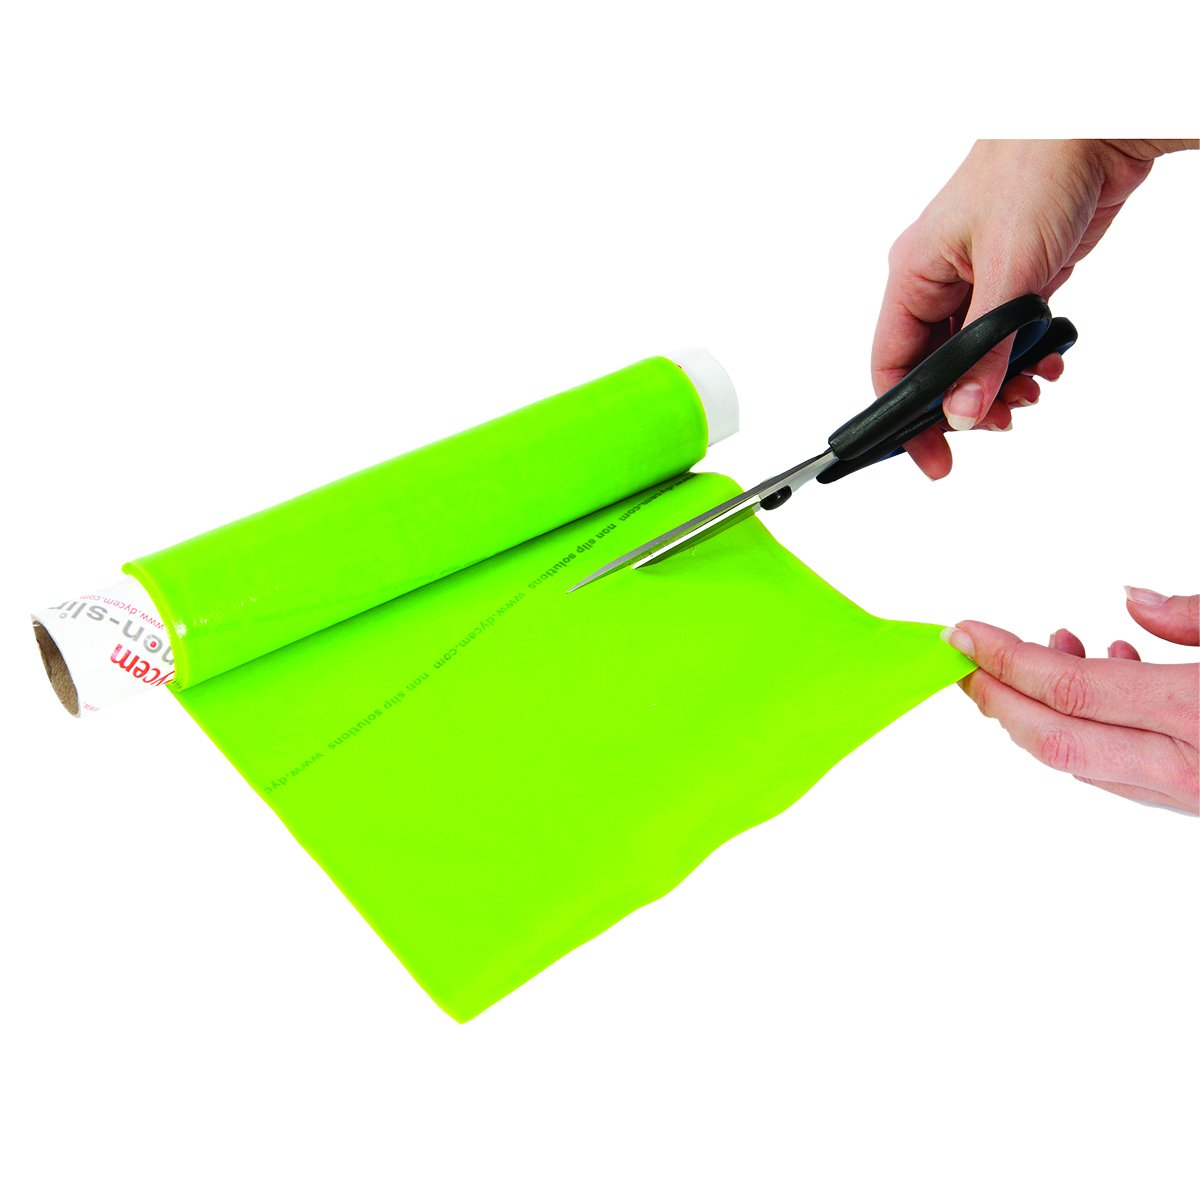 Dycem 50-1502LIM Non-Slip Material Save money Roll x 3-1 4' Lime 8